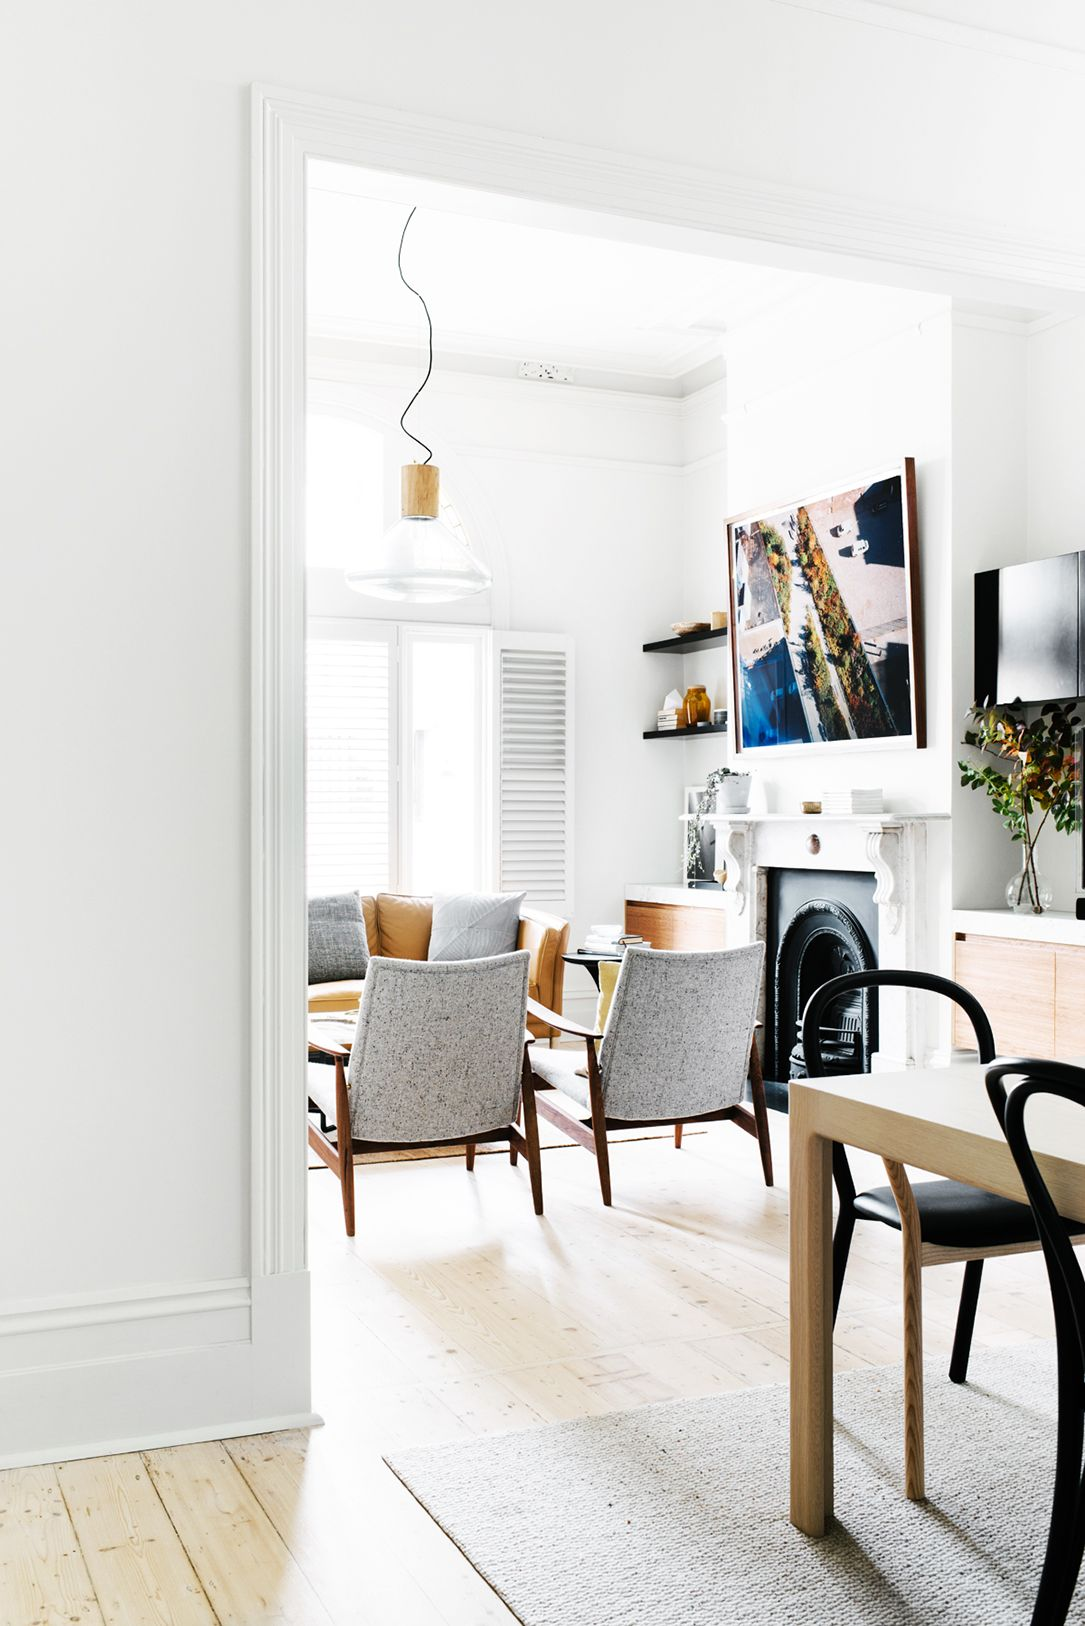 This Victorian Renovation Is the Definition of Chic | Definitions ...